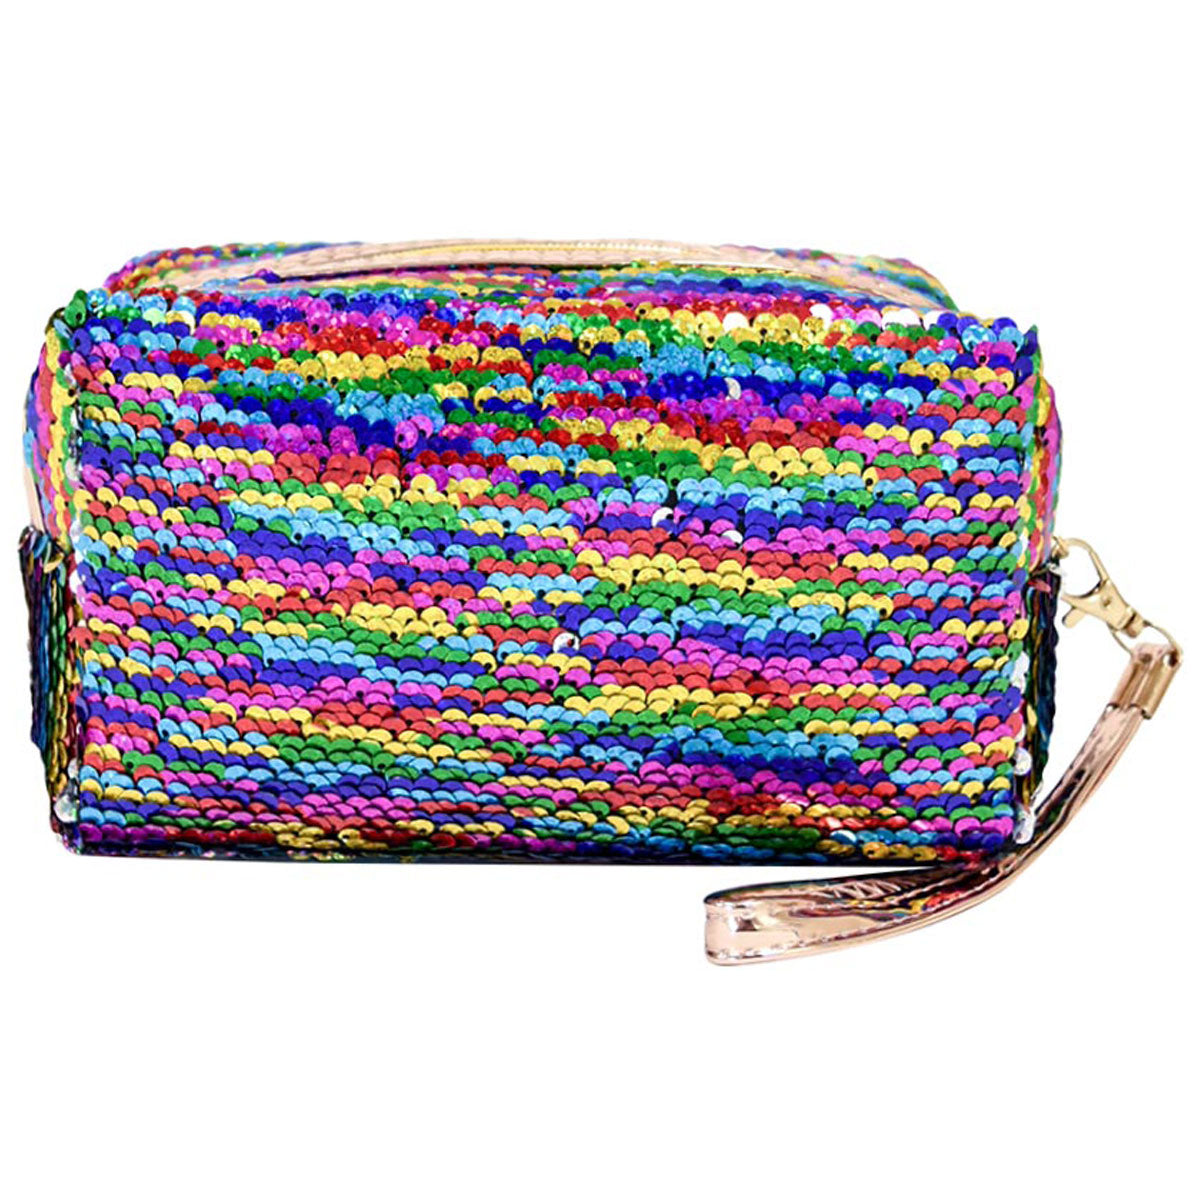 Sequin Cosmetic Bag - Rainbow